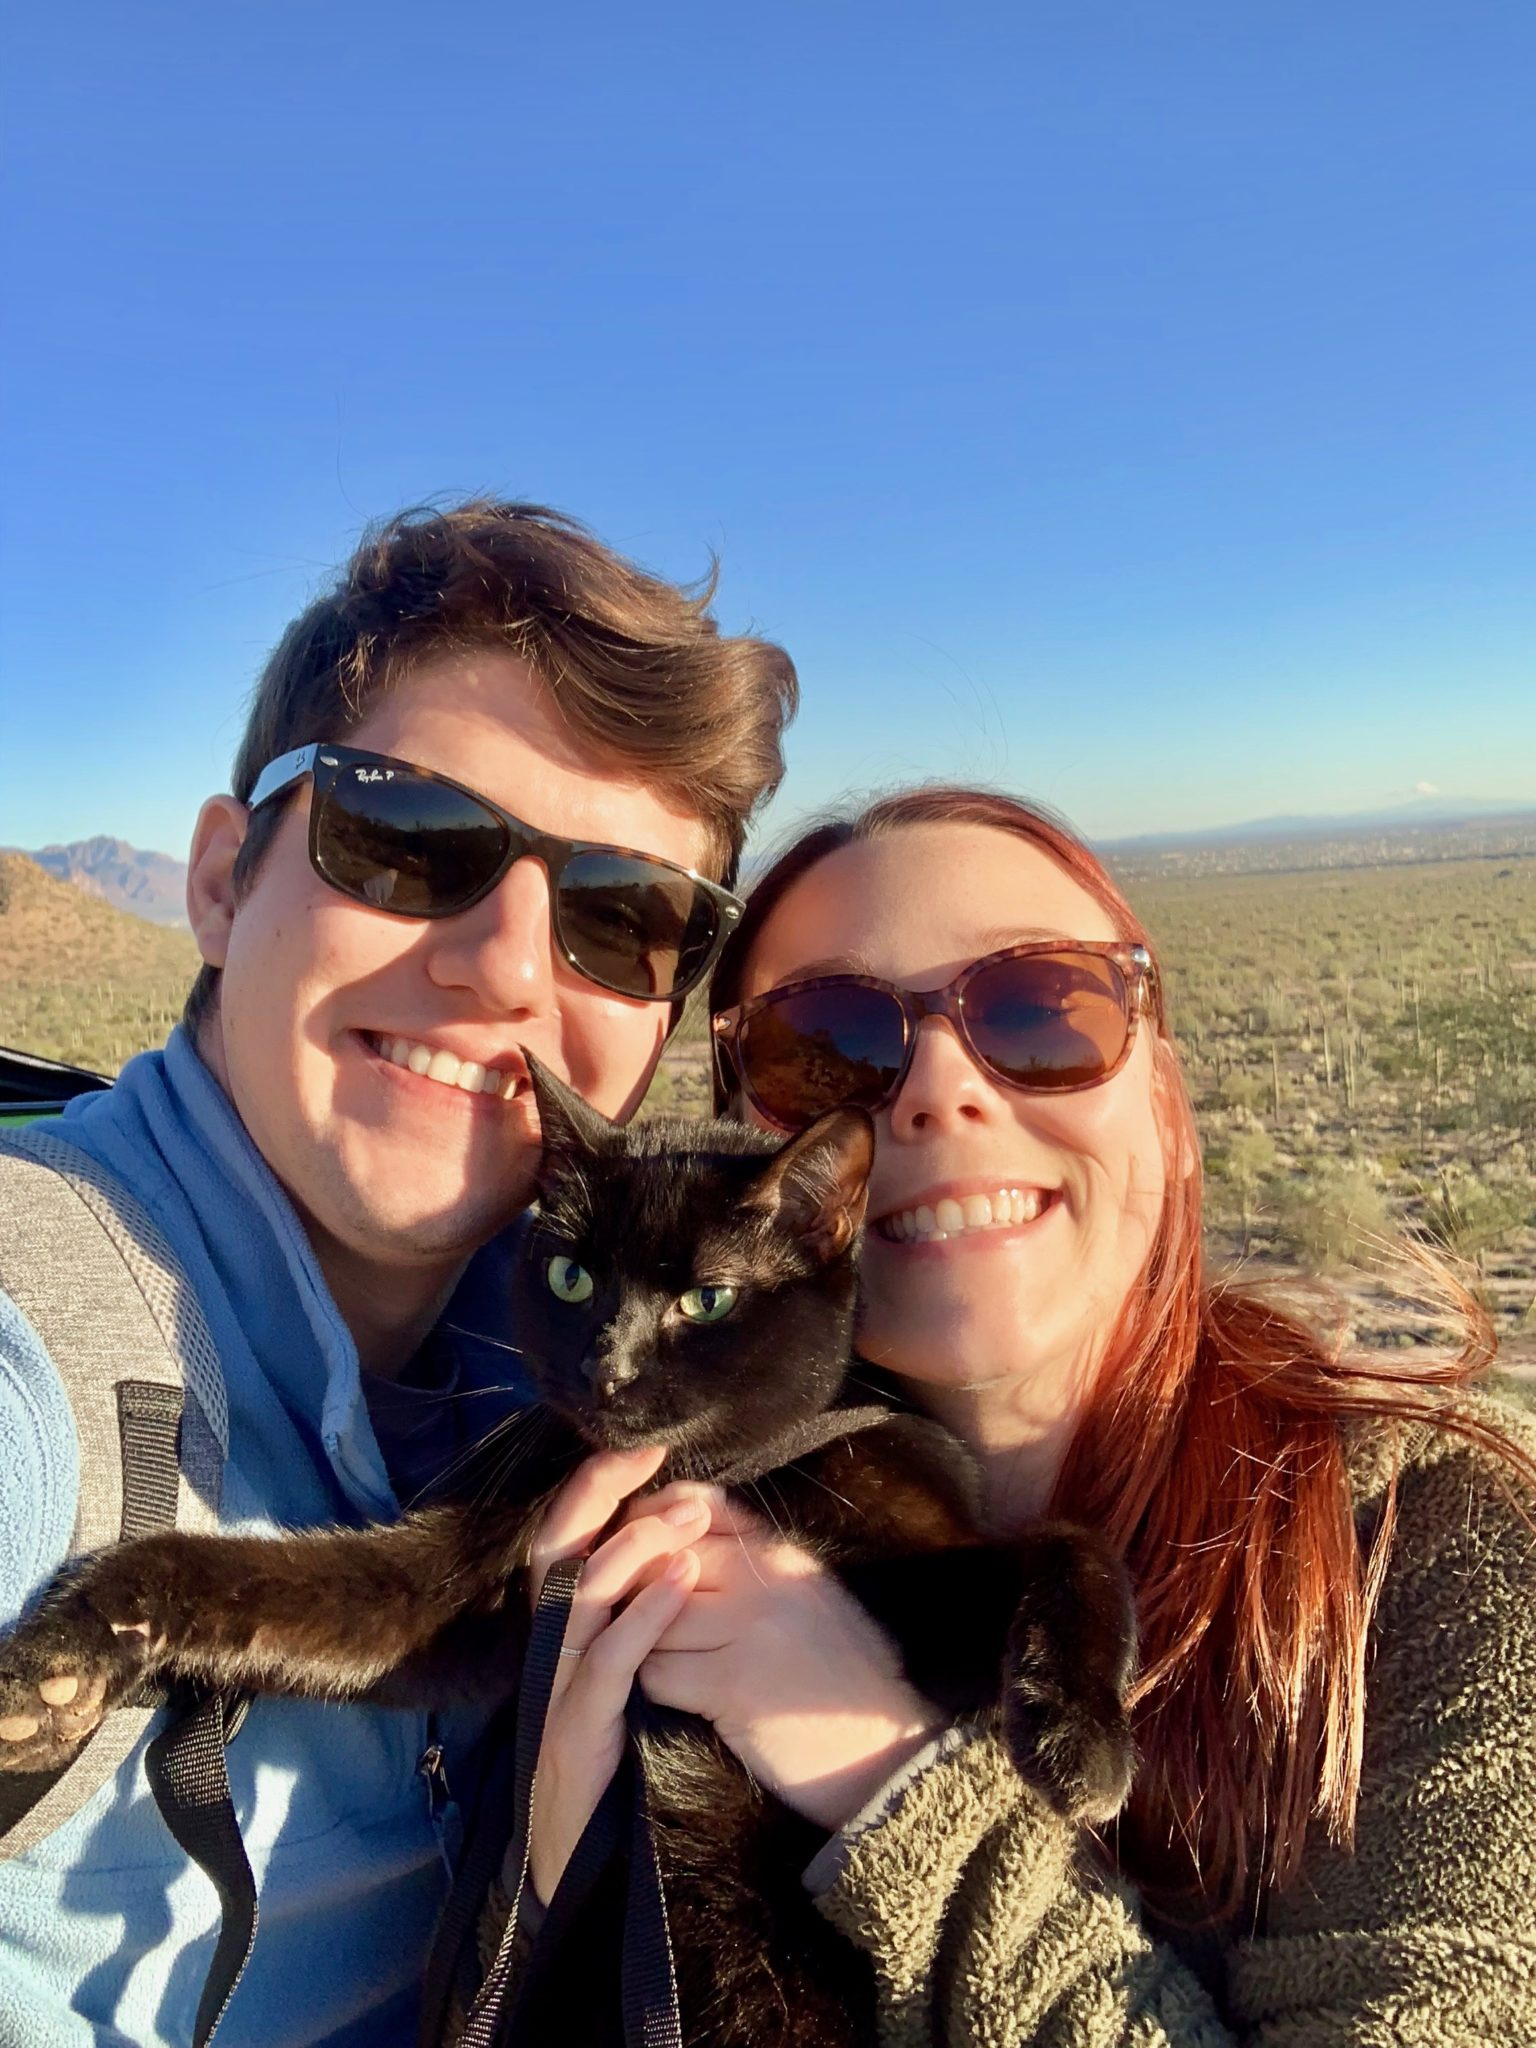 Cash the adventure cat with his humans